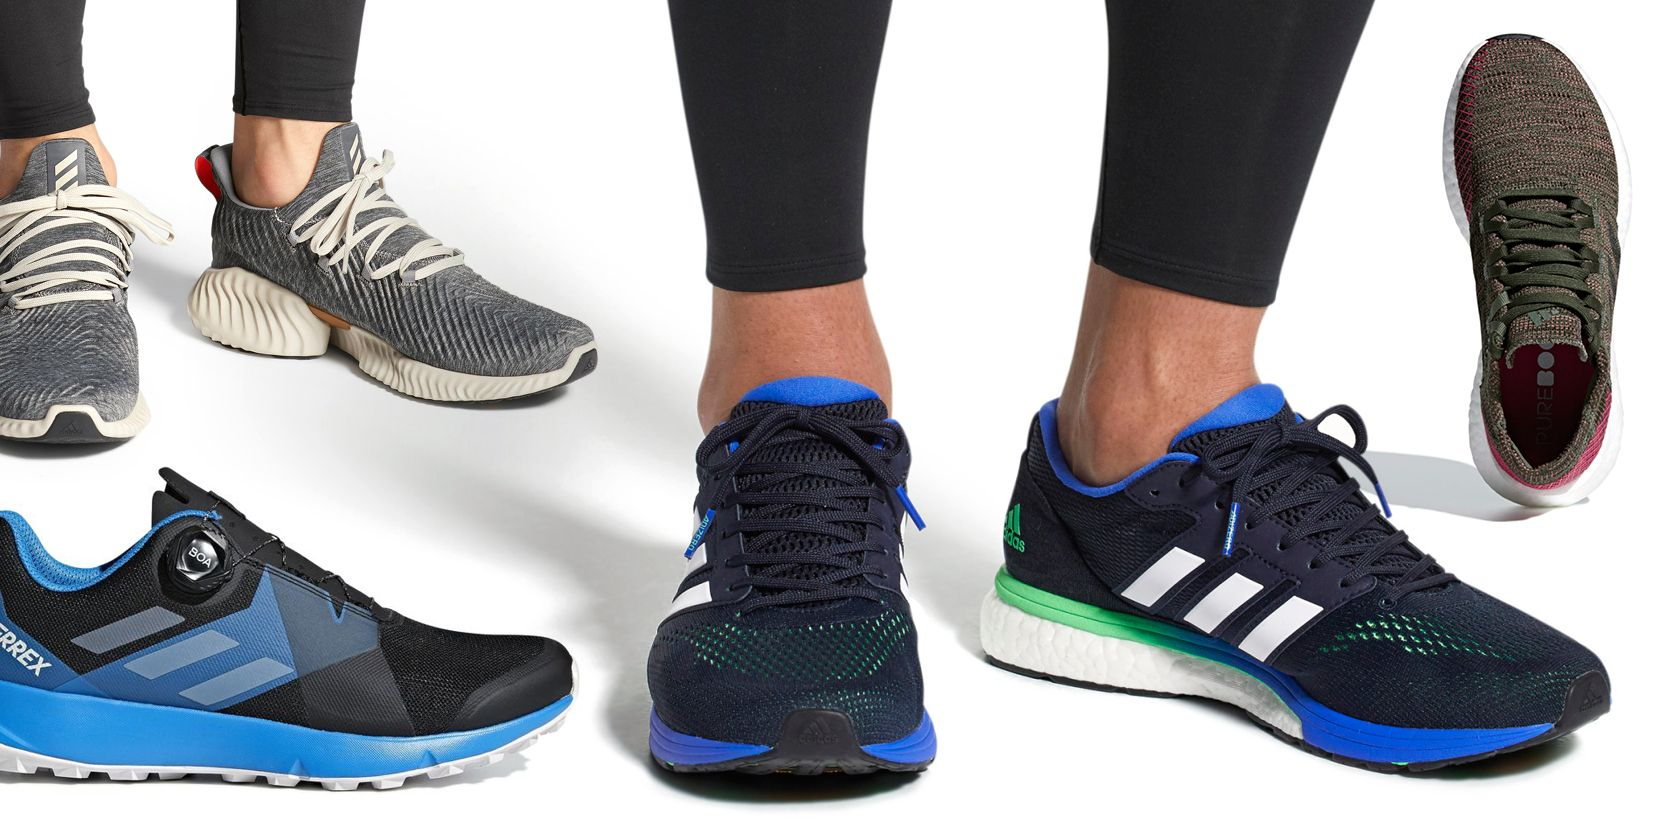 24a2b584c322 The 10 Best Running Shoes From Adidas